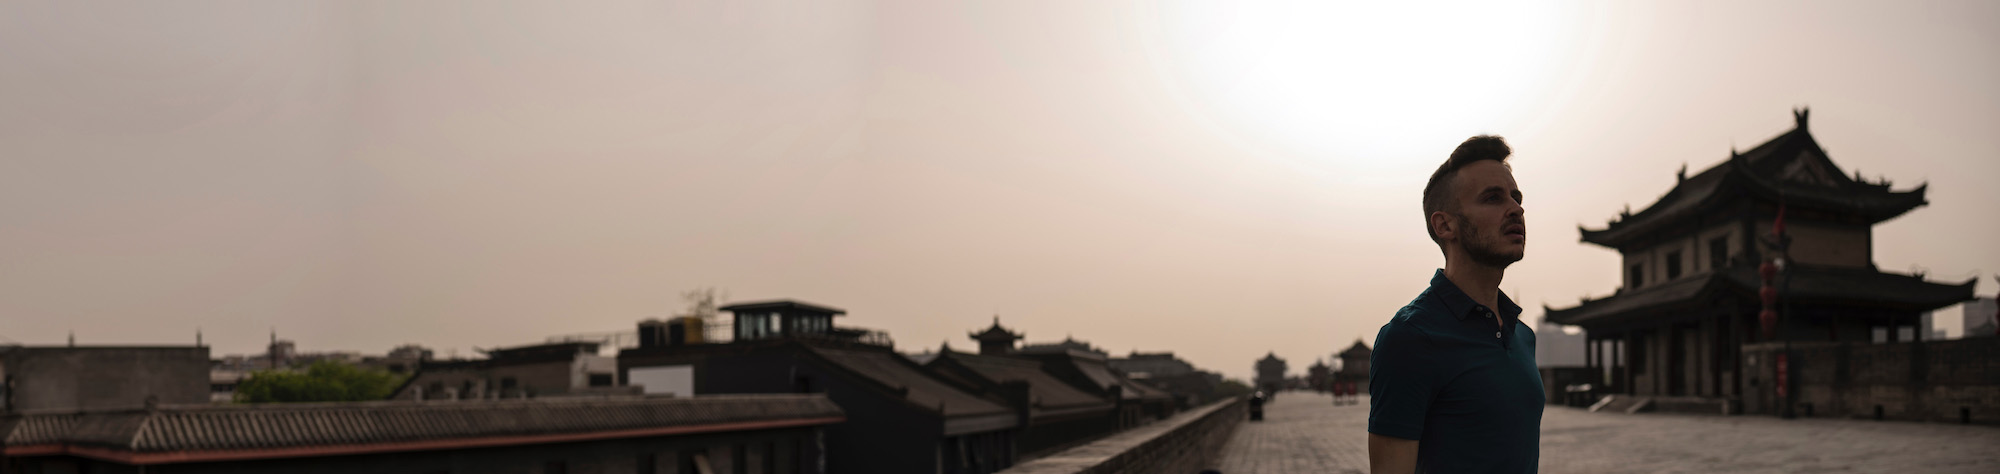 Panorama of Xi'an City Wall with Smoggy Sky